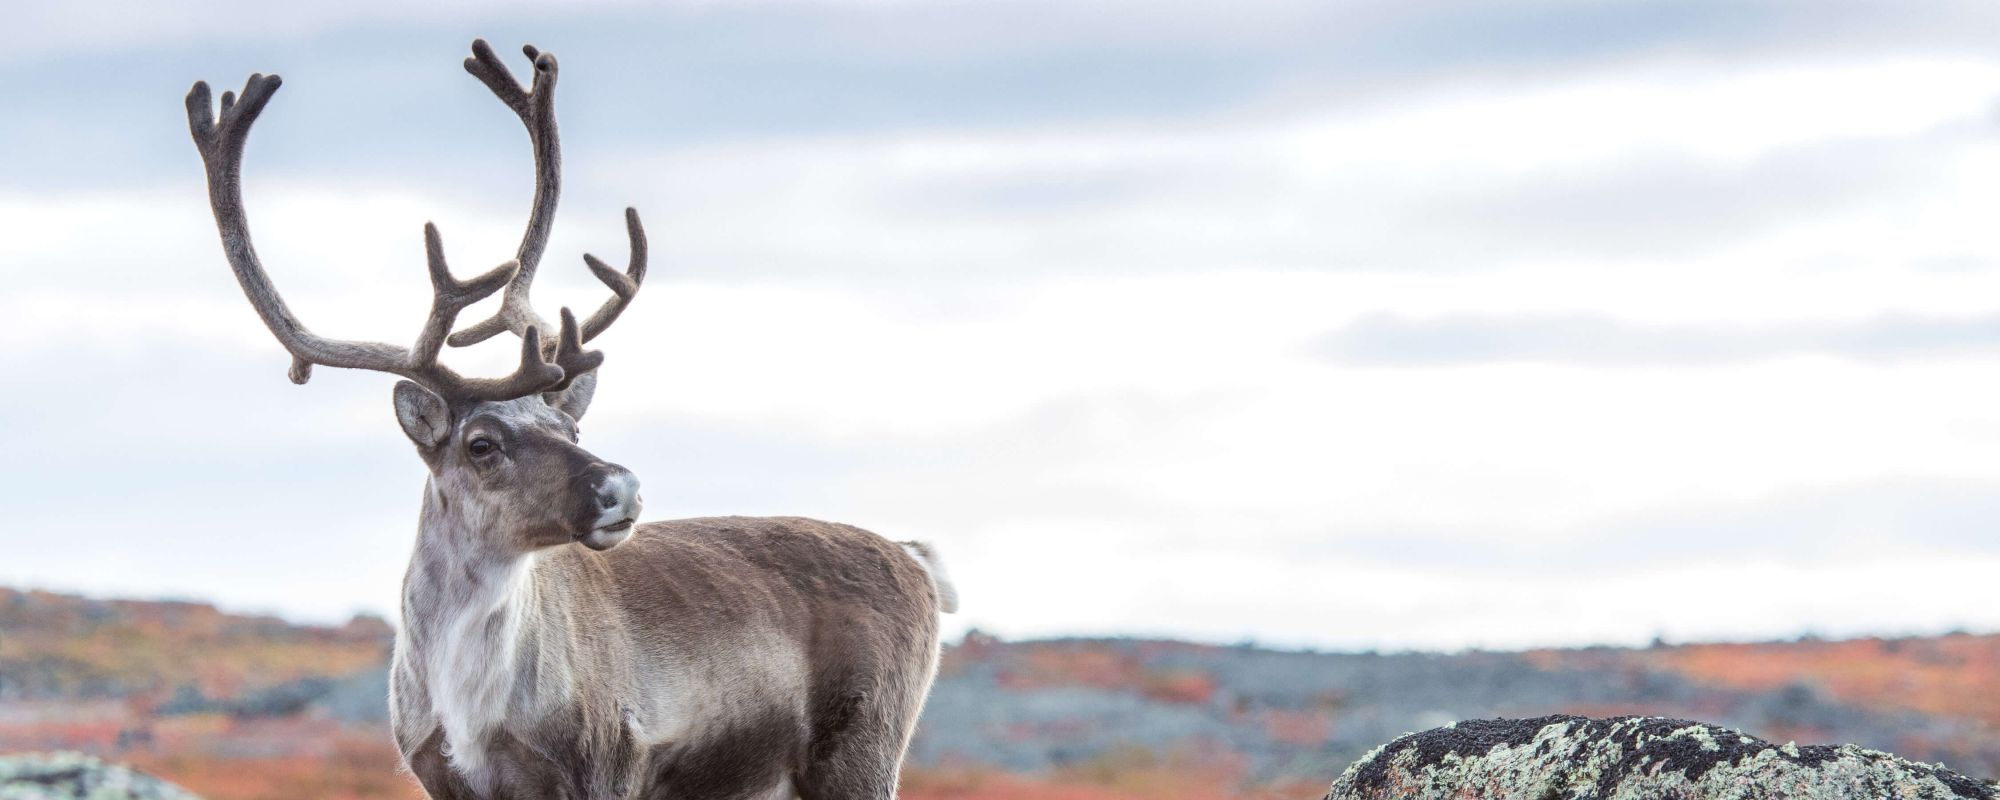 Bull caribou on barrens in autumn colours